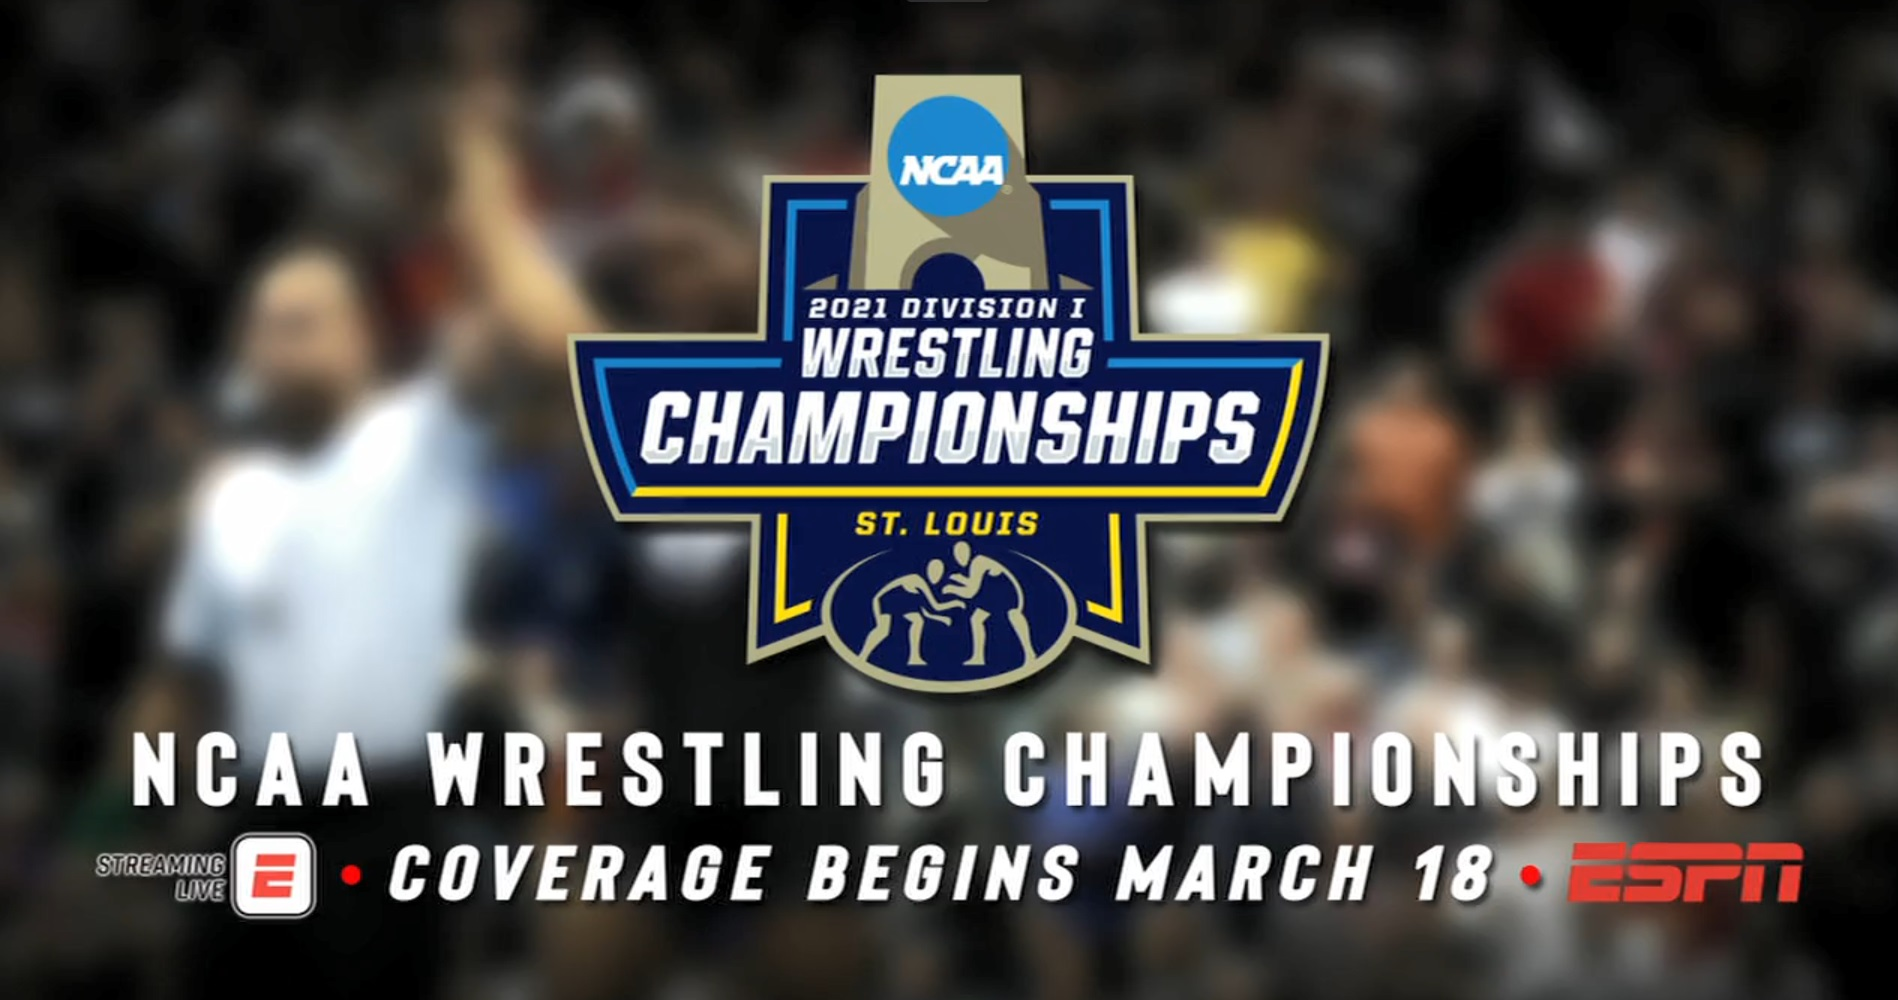 NCAA Division I Wrestling Championships Return to ESPN: Complete Television Coverage and 'Every Mat, Every Match' Digital Offering on the ESPN App - ESPN Press Room U.S.